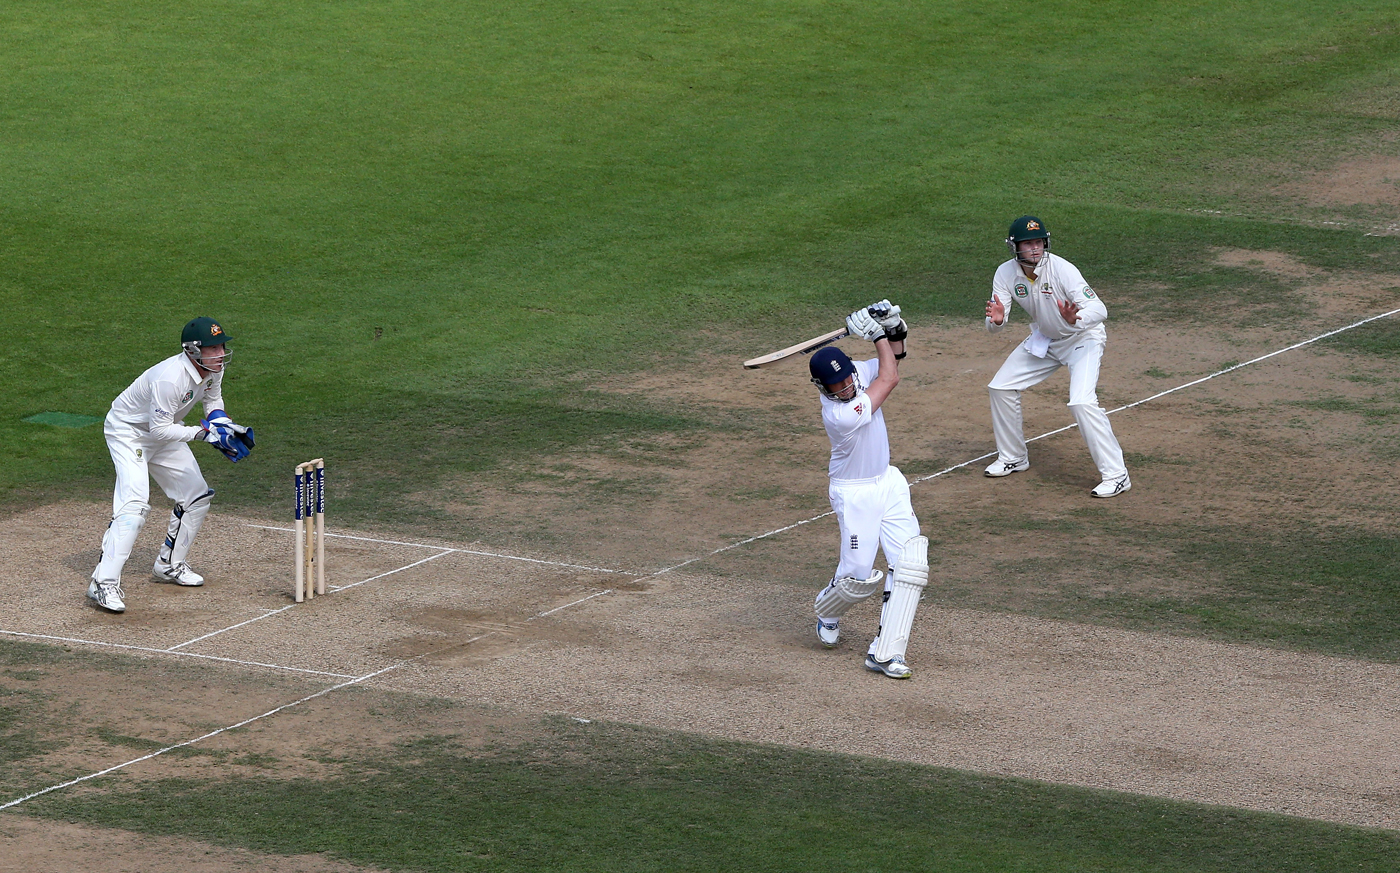 Nine is fine: Swann v Aussie at The Oval in 2013